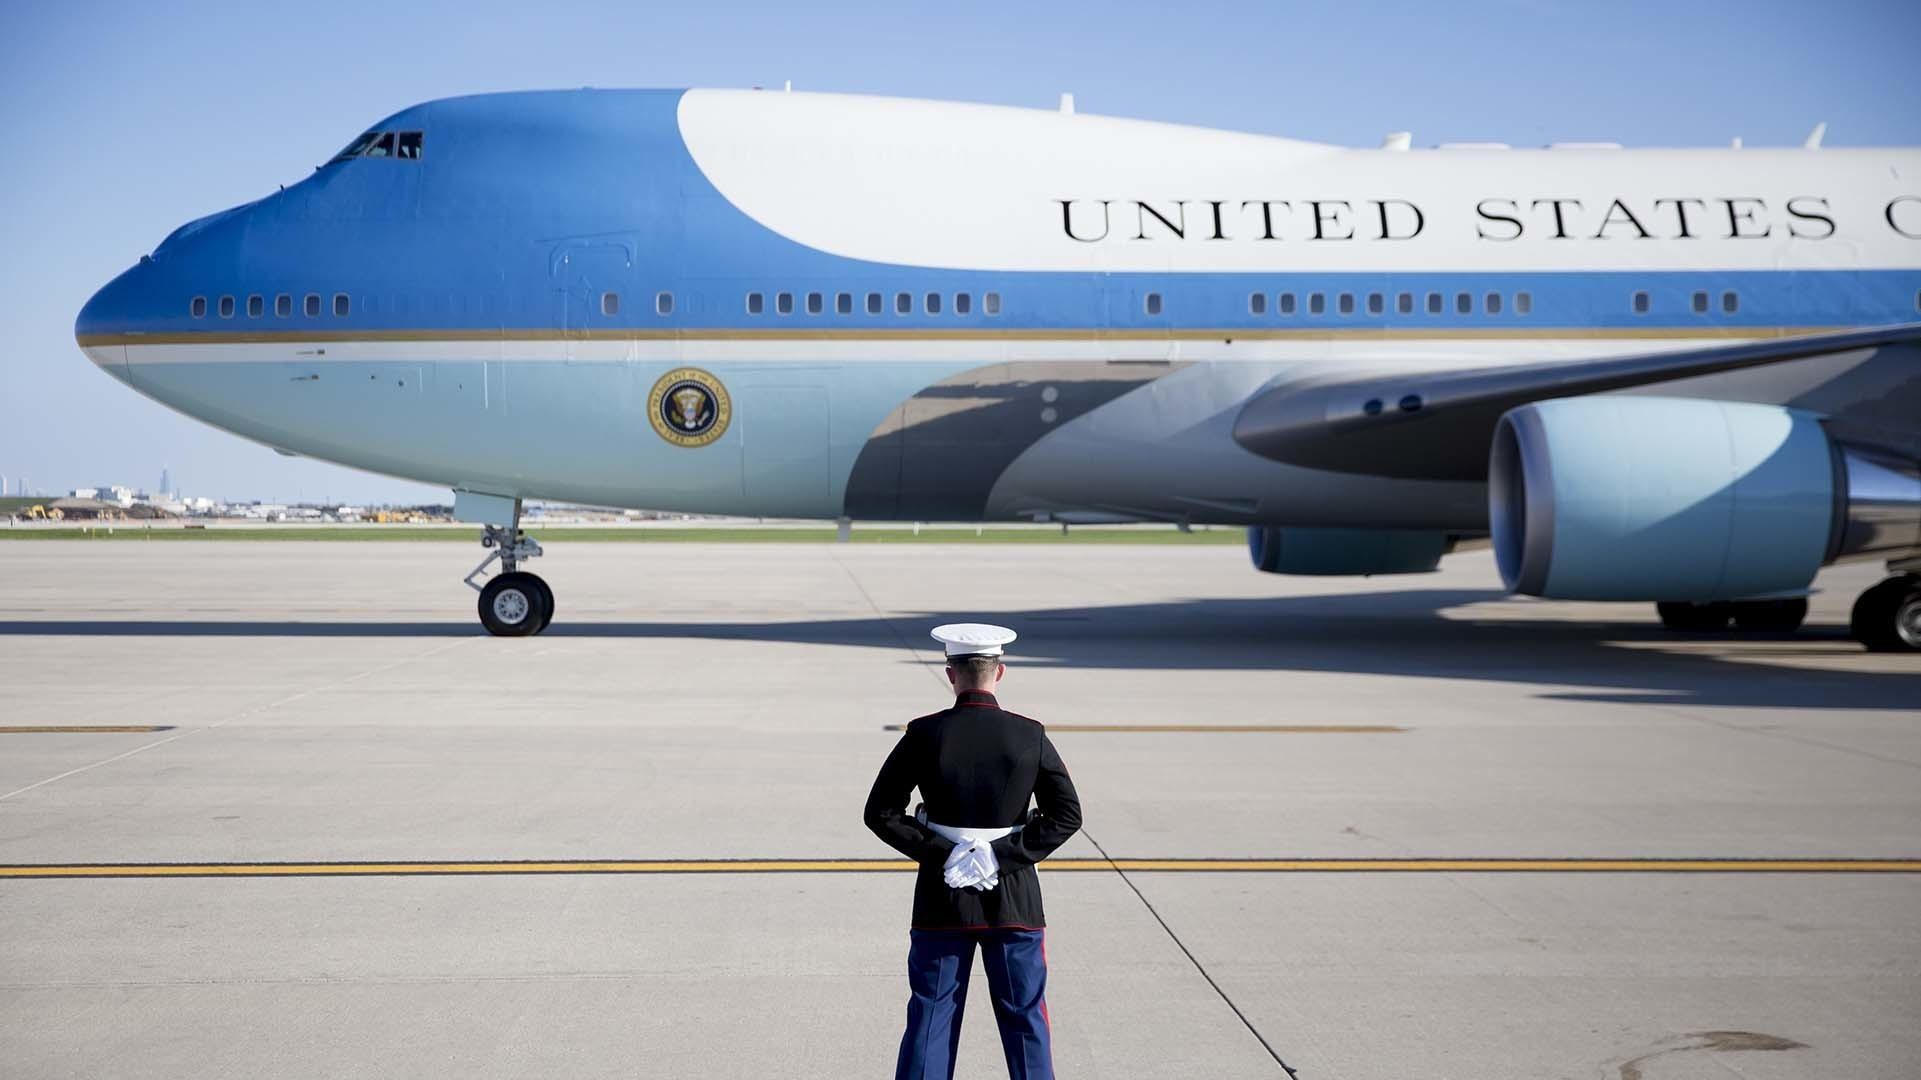 New Air Force One to be White Tailed 747s